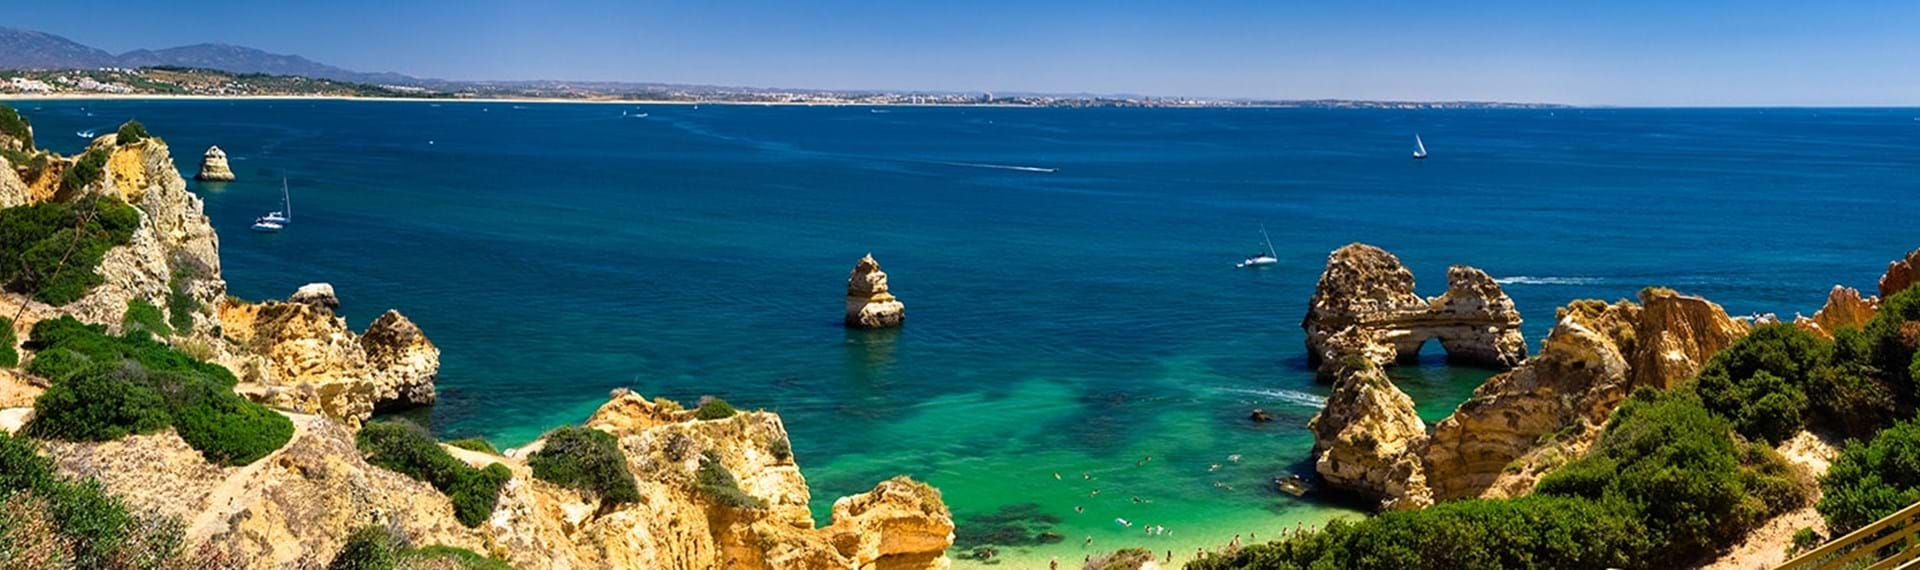 Travel-to-Portugal-on-a-package-holiday